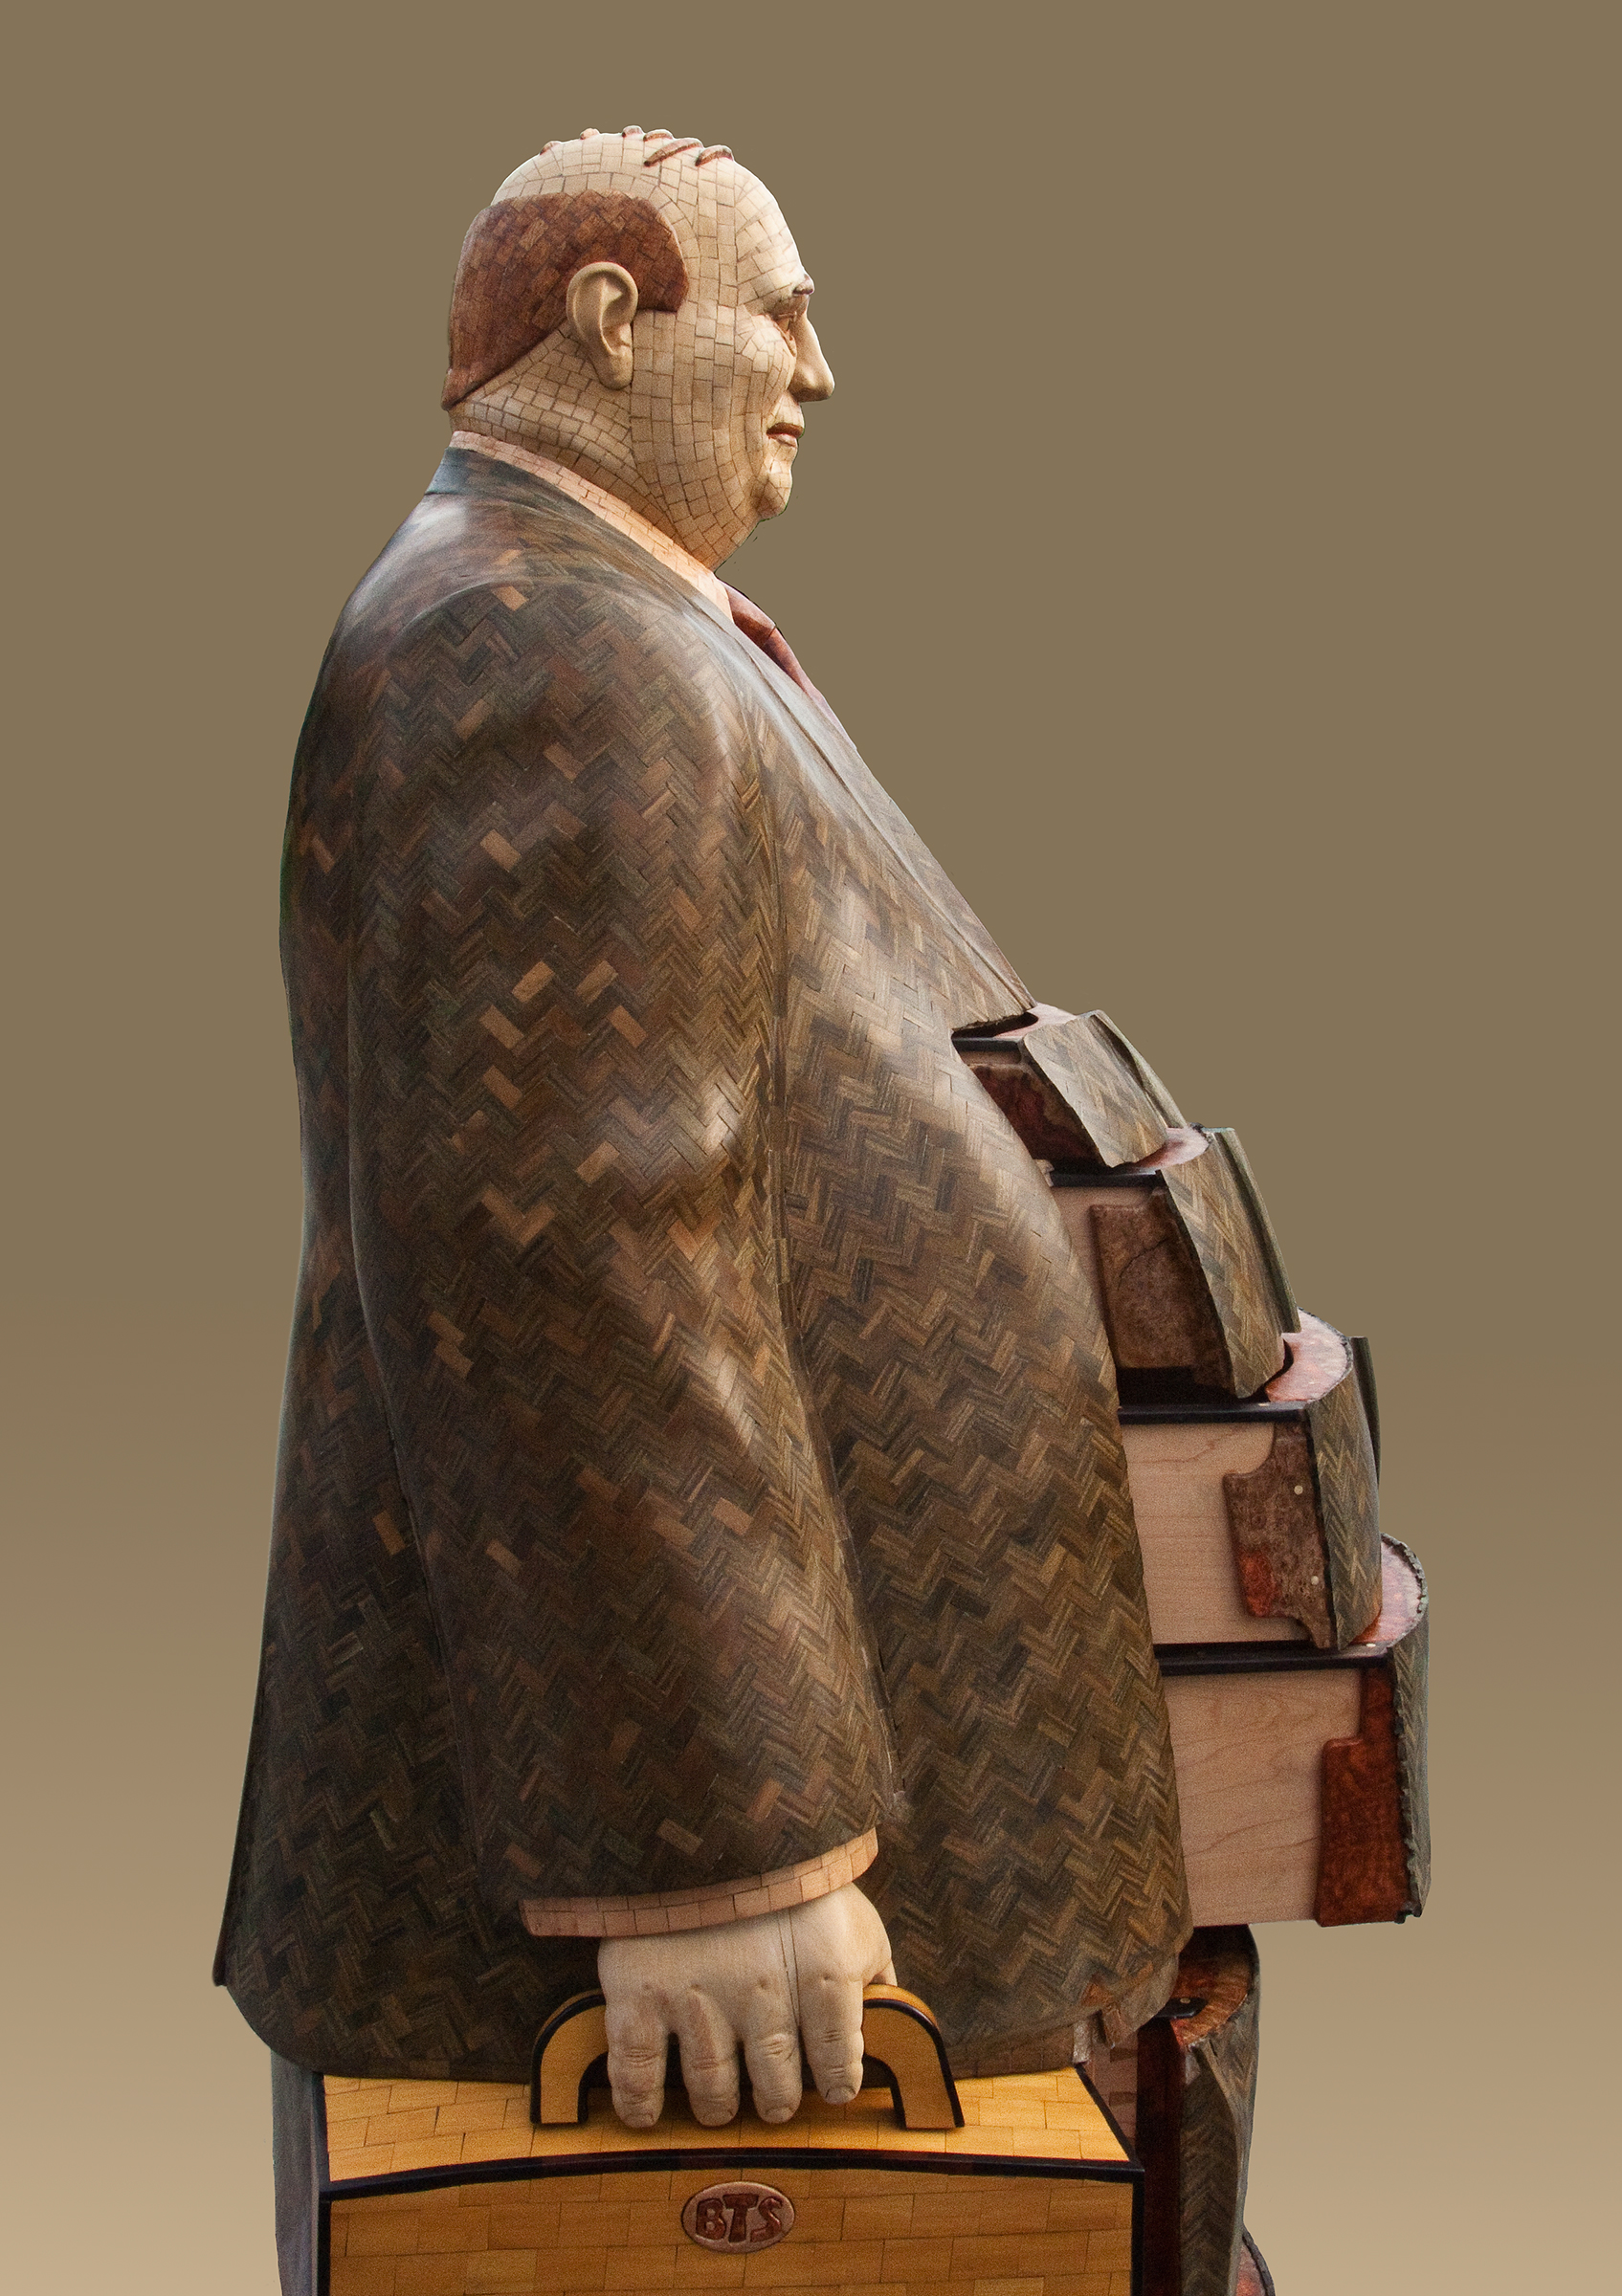 The Man with the Yellow Briefcase